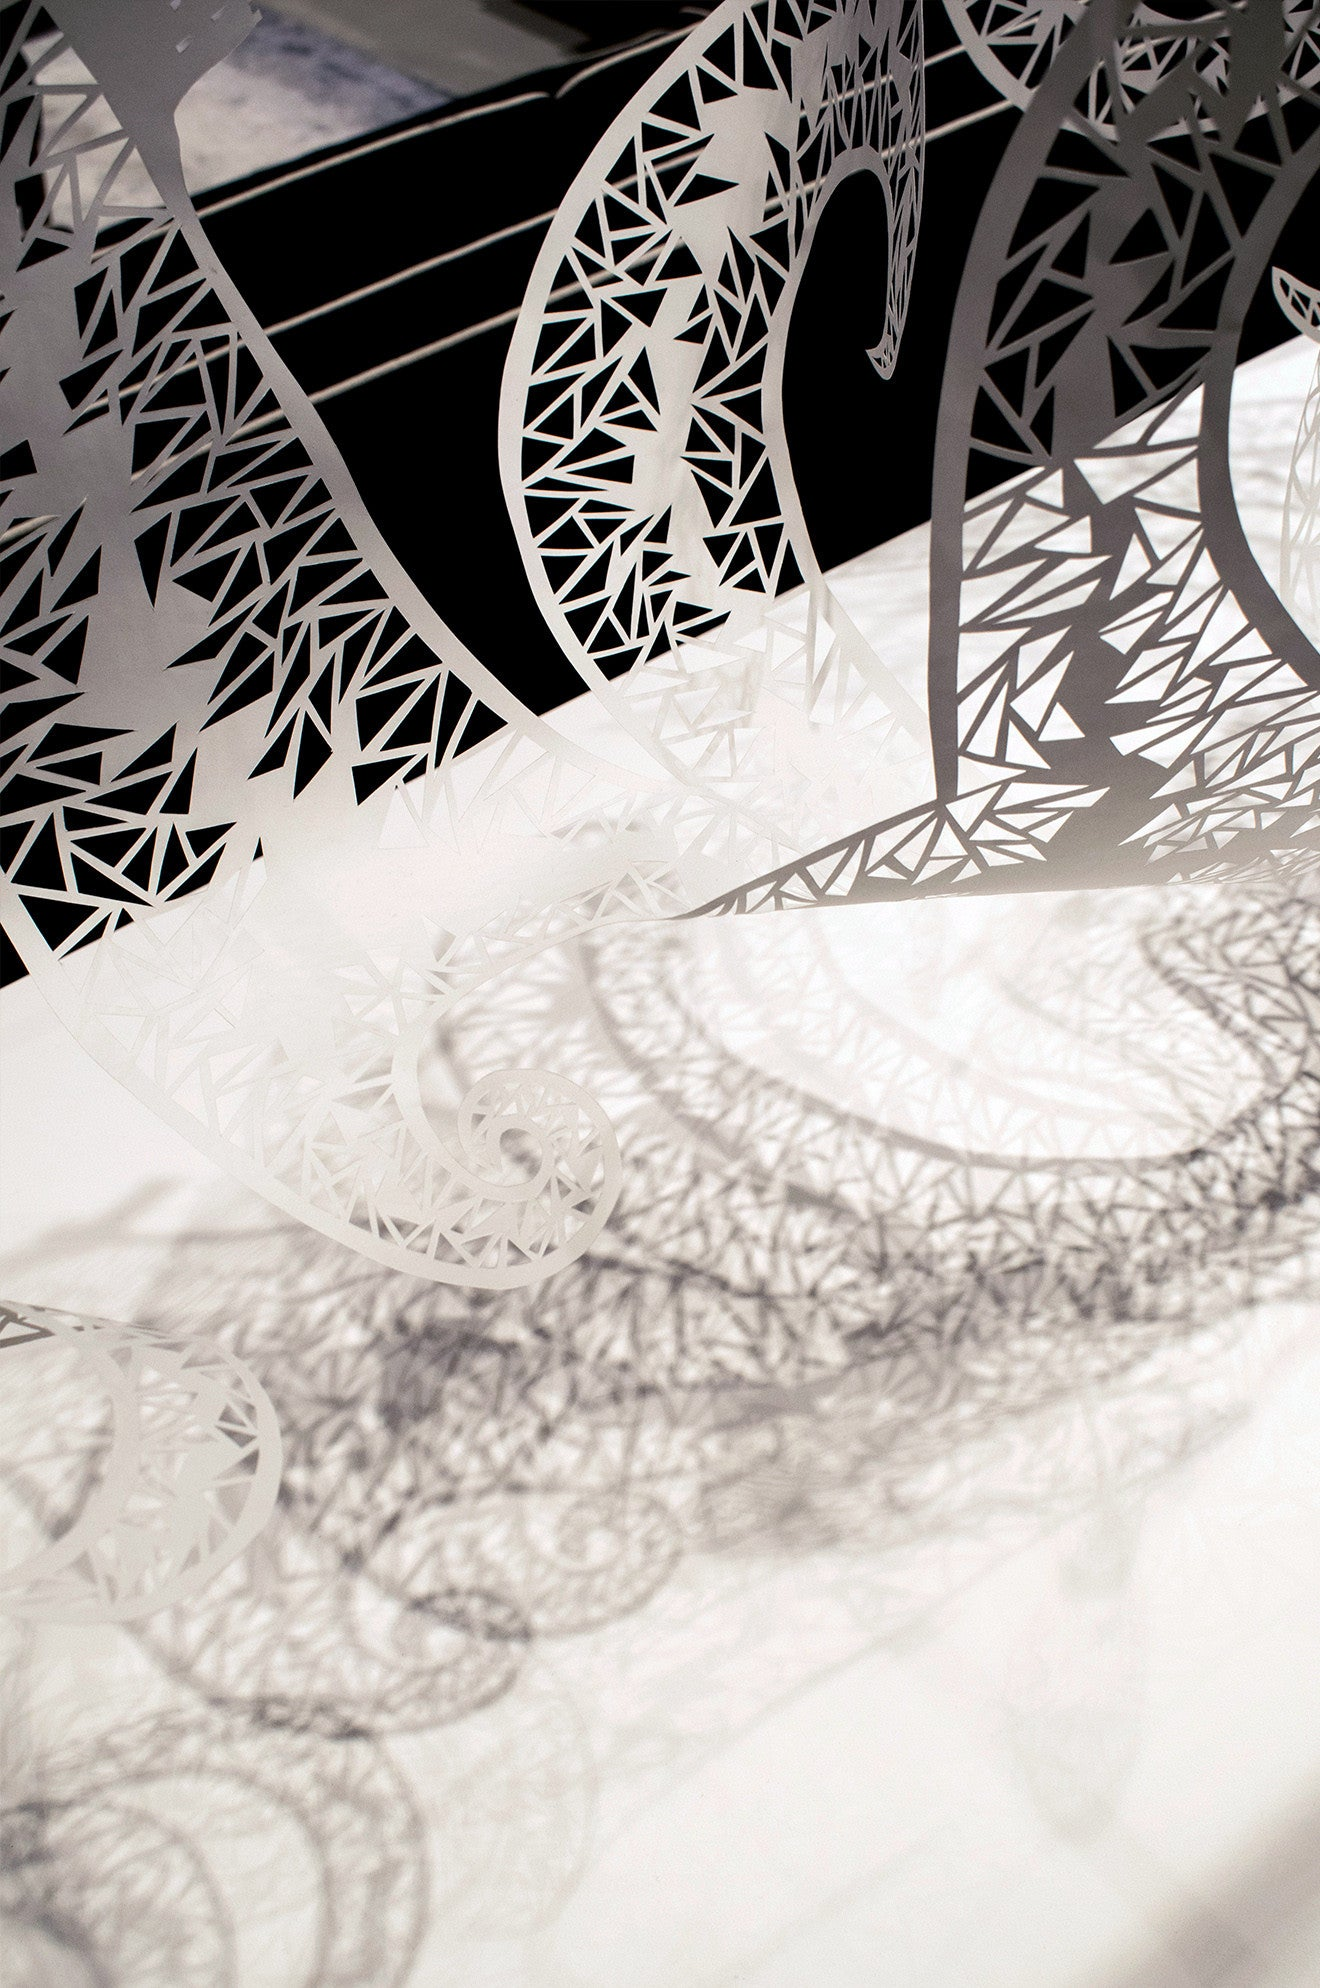 Beautiful hand cut artwork sculptures by Shannon Bartlett-Smith casting geometric shadows